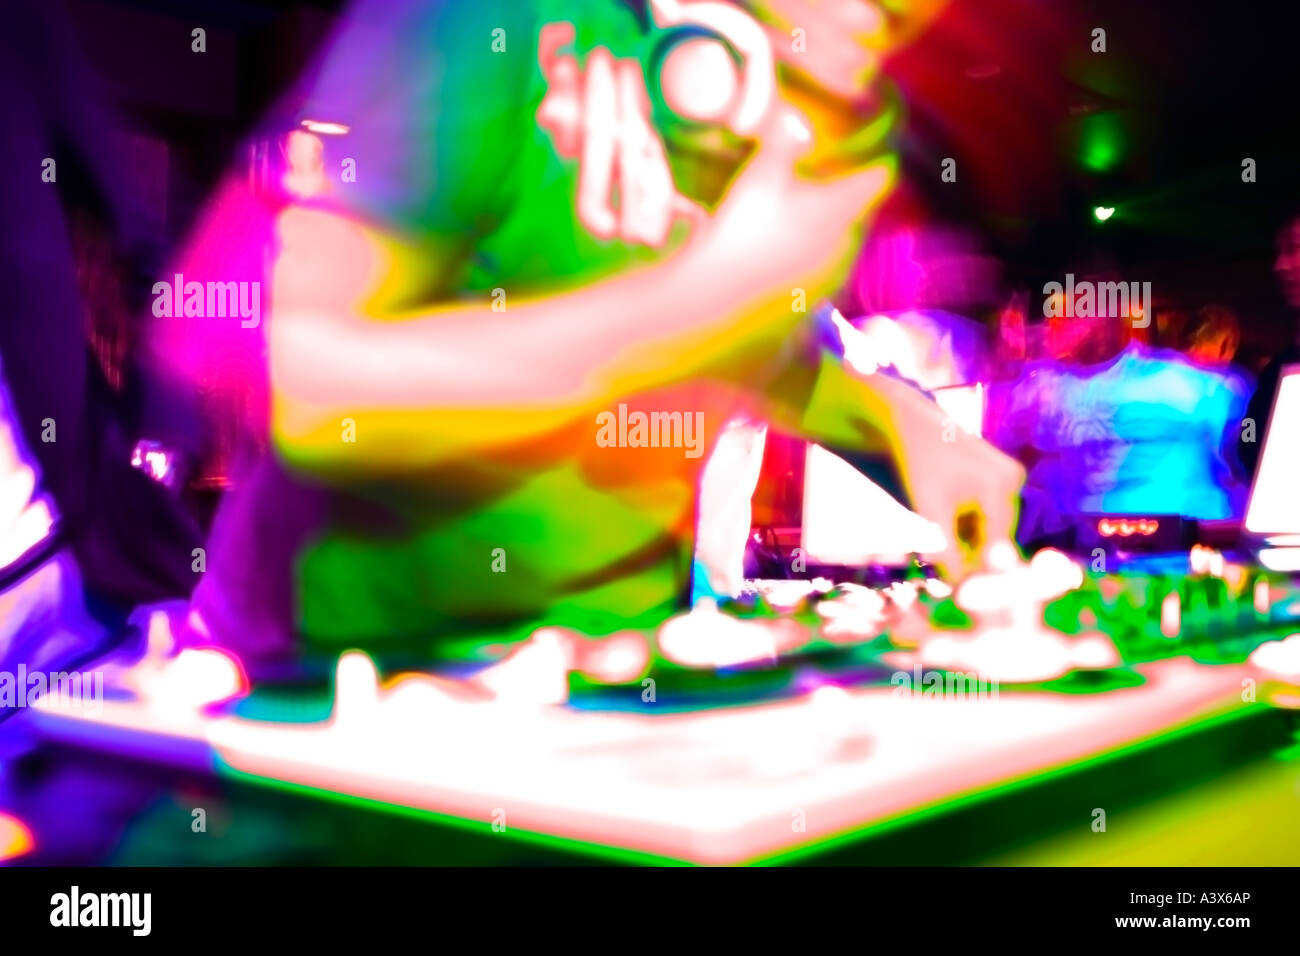 Crazy Experimental Image of a DJ Mixing in a Night Club. Bright Saturated Colours (Colors). - Stock Image